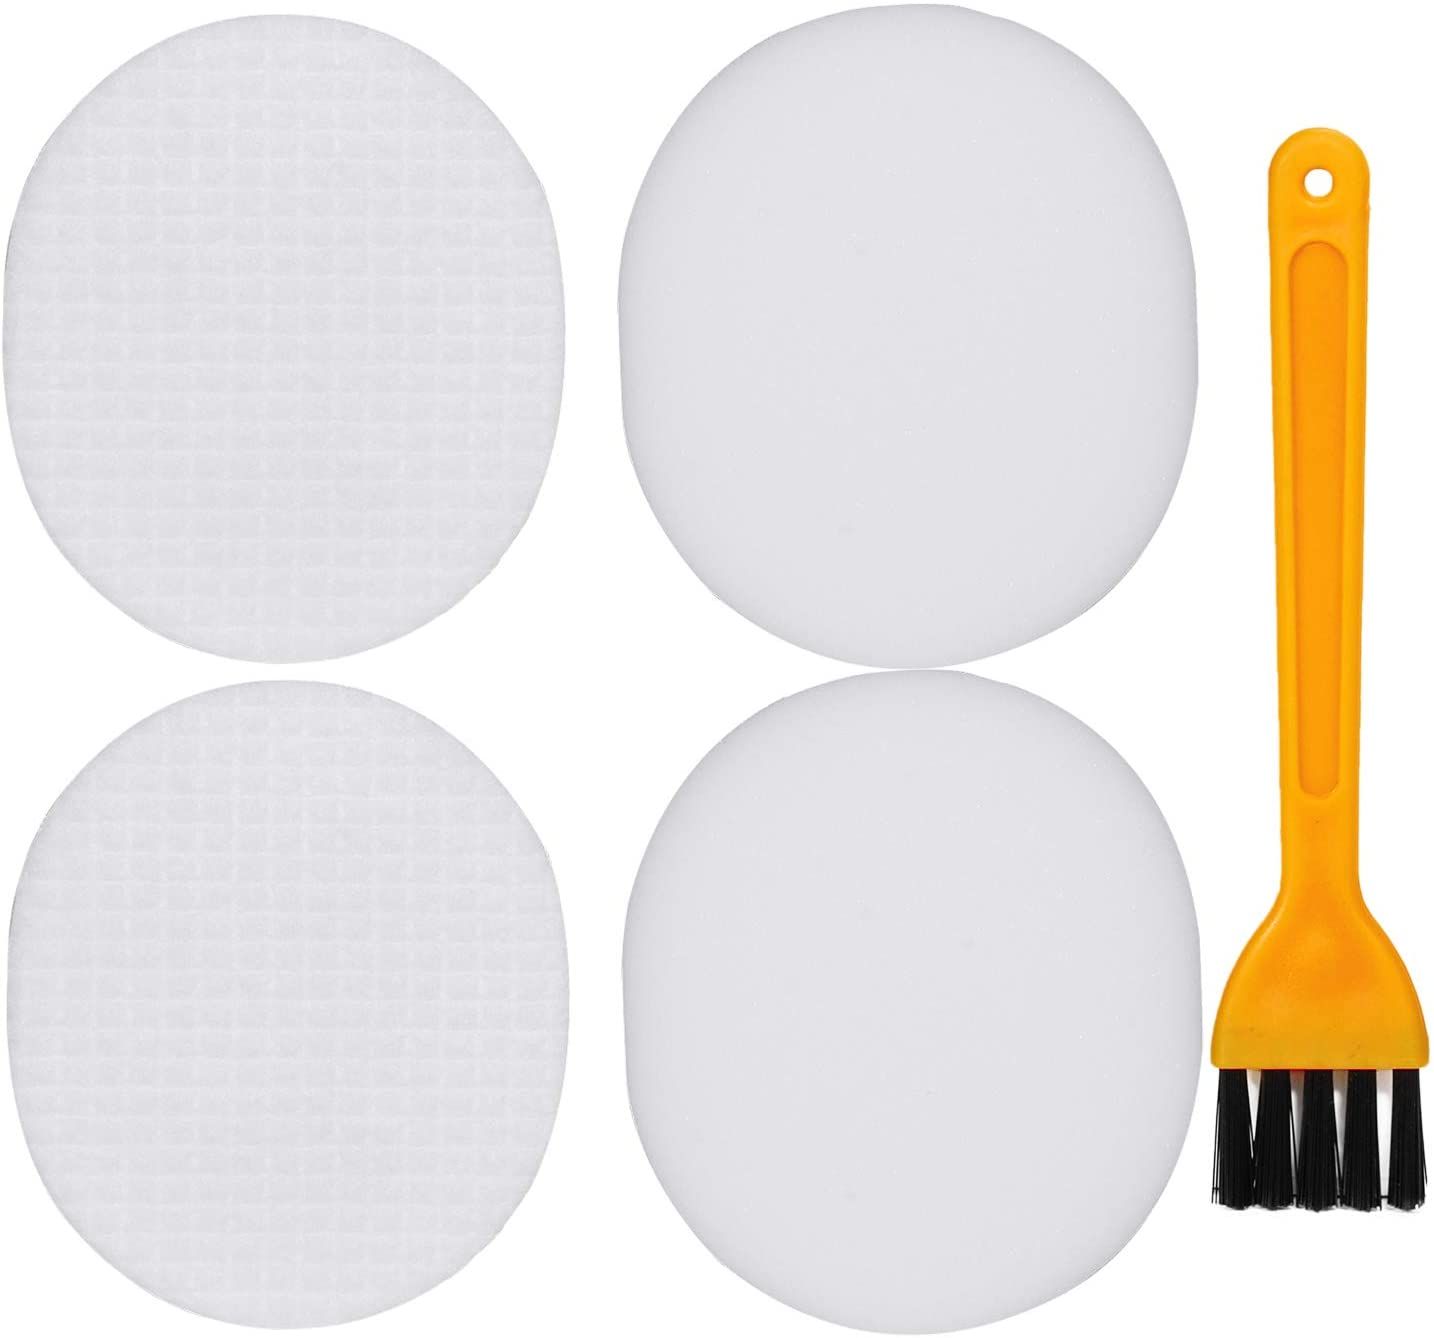 HIFROM Replacement Foam and Felt Filter Kit with Cleaning Brush Replacement for Shark Navigator NV80 NV70 NV90 UV420 NVC80C DLX Replaces Part# XFF80 & XHF80